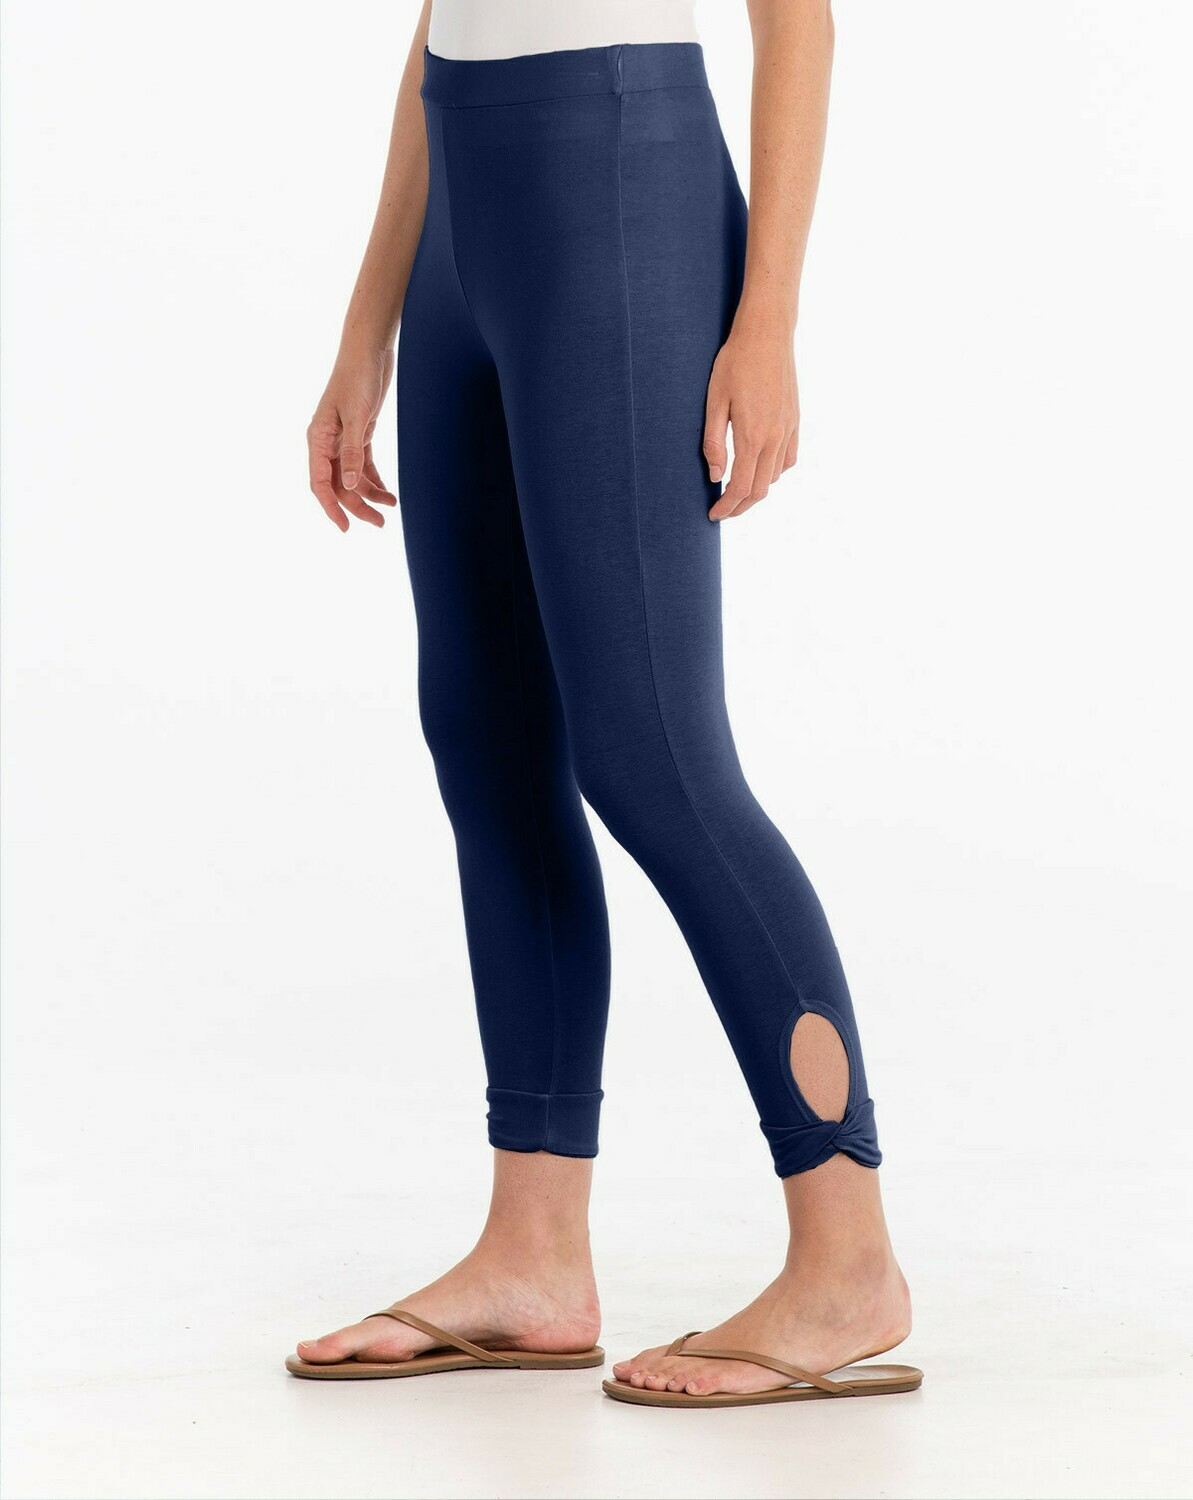 FINAL SALE ACPSNPD Sanibel Capri Legging in Moonlight